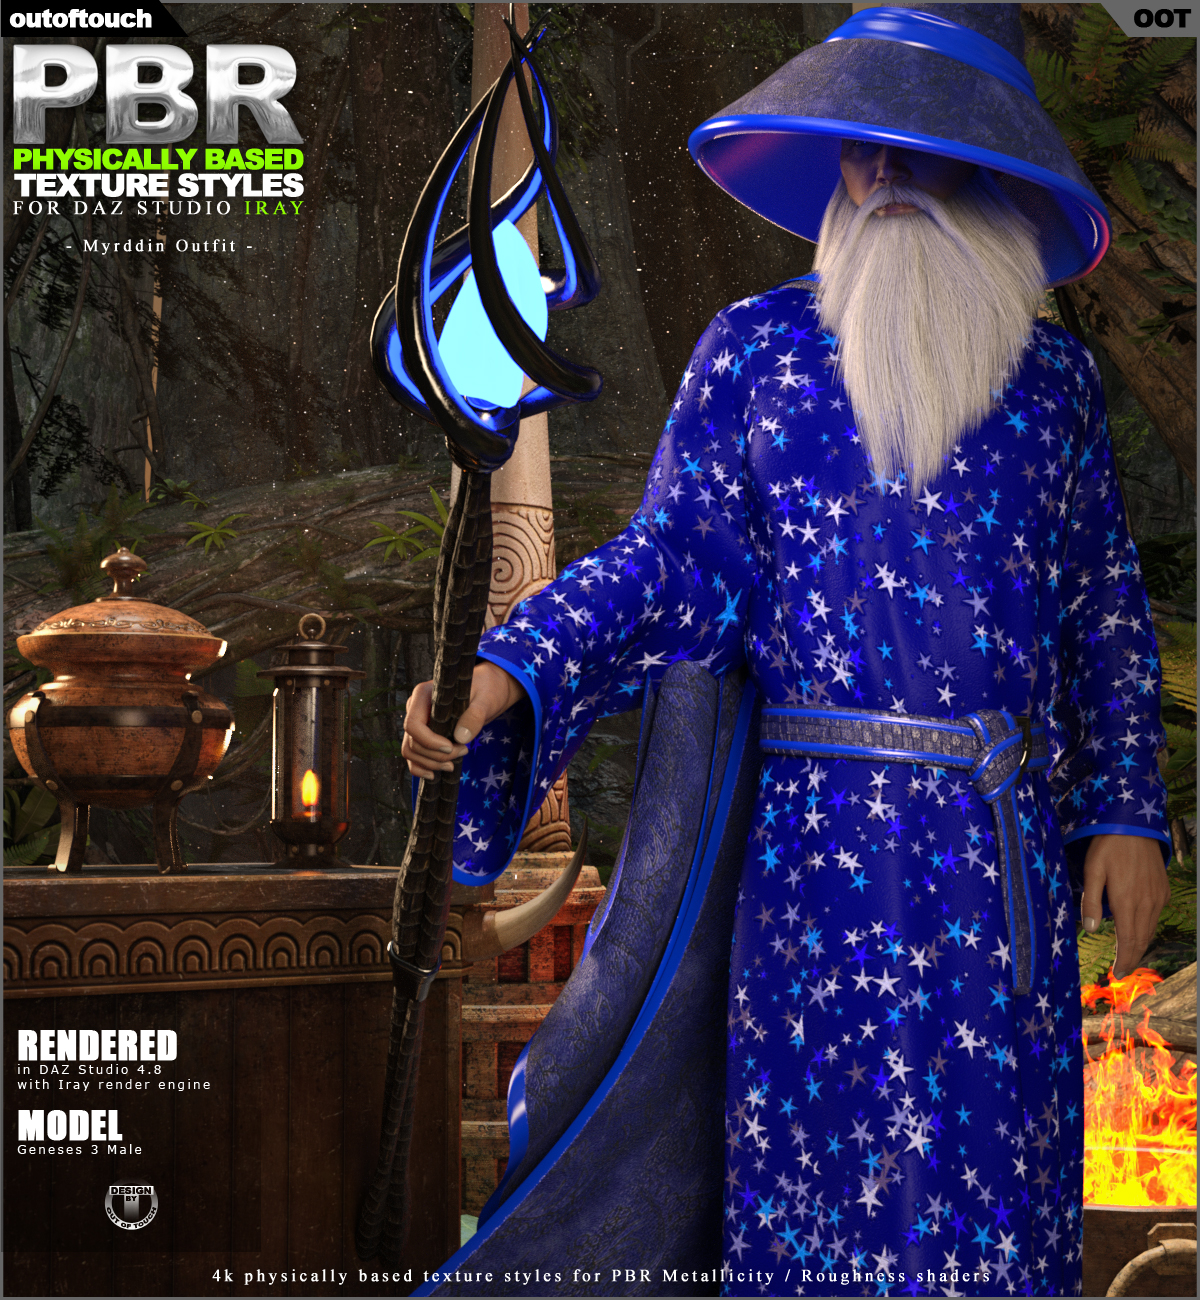 OOT PBR Texture Styles for Myrddin Outfit